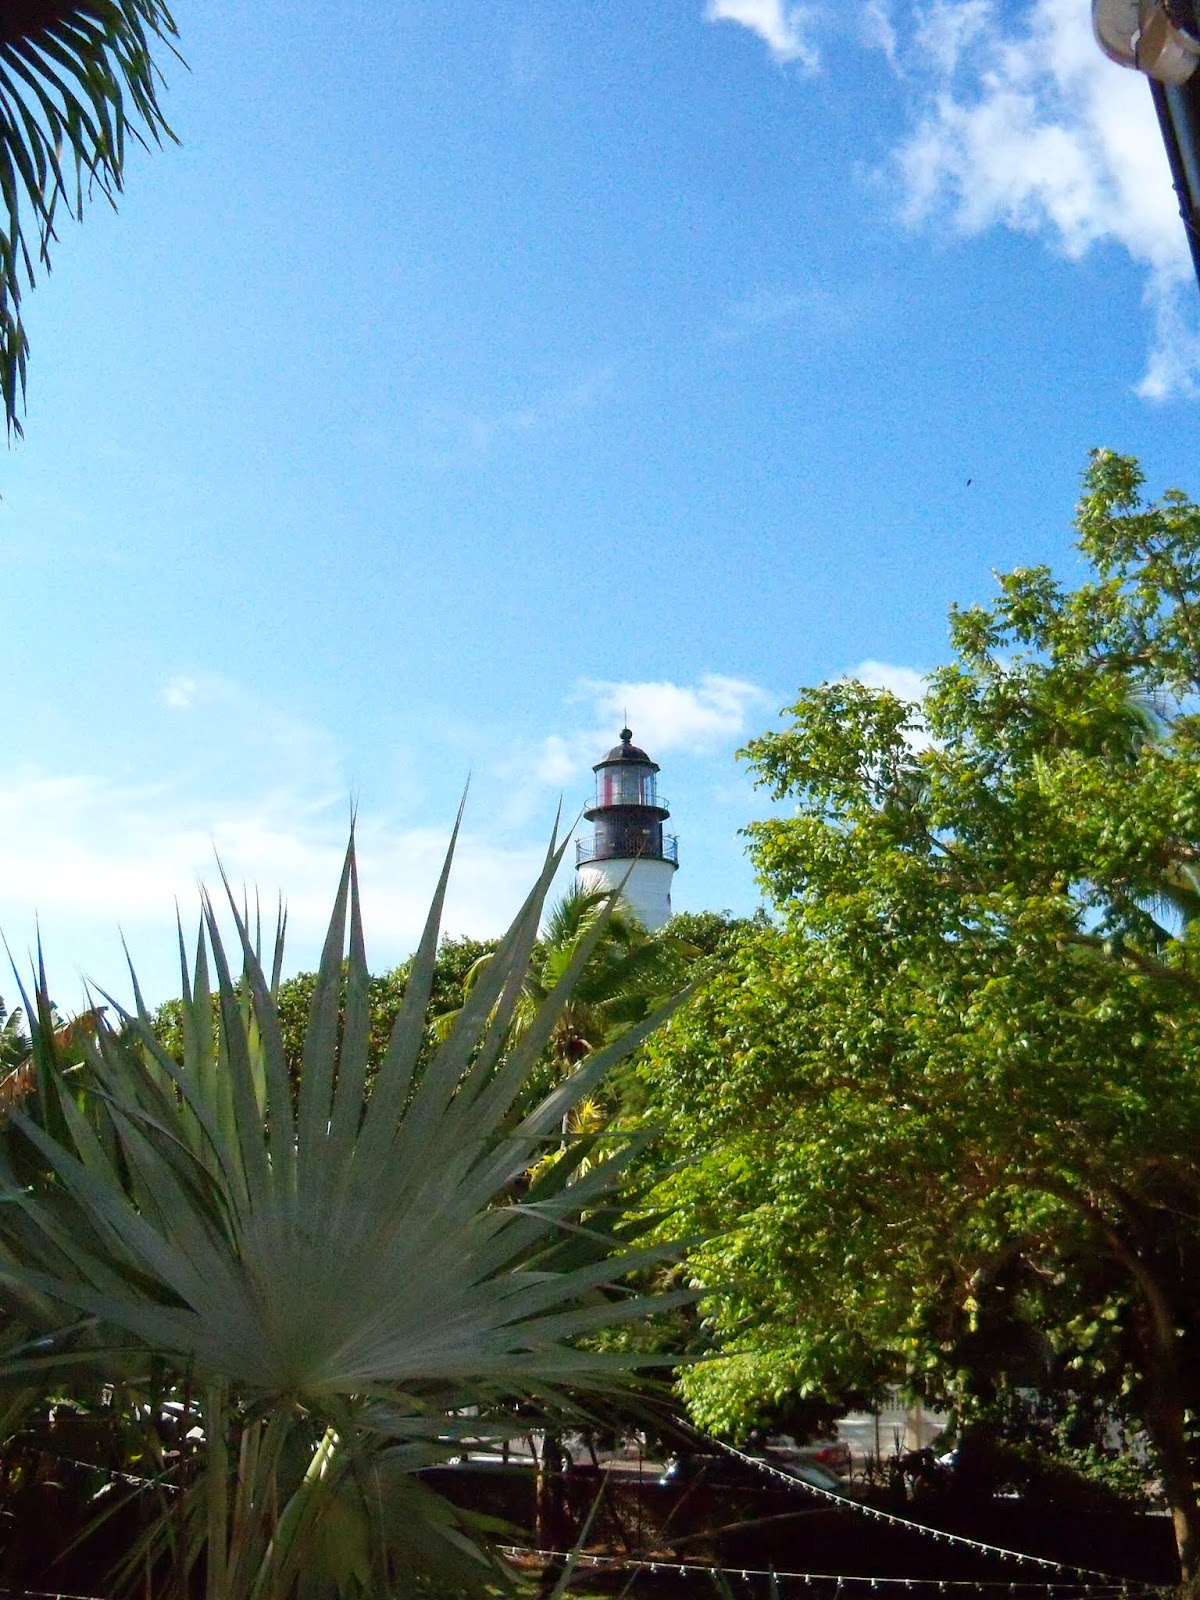 Key West Vacation - 116_5427.JPG